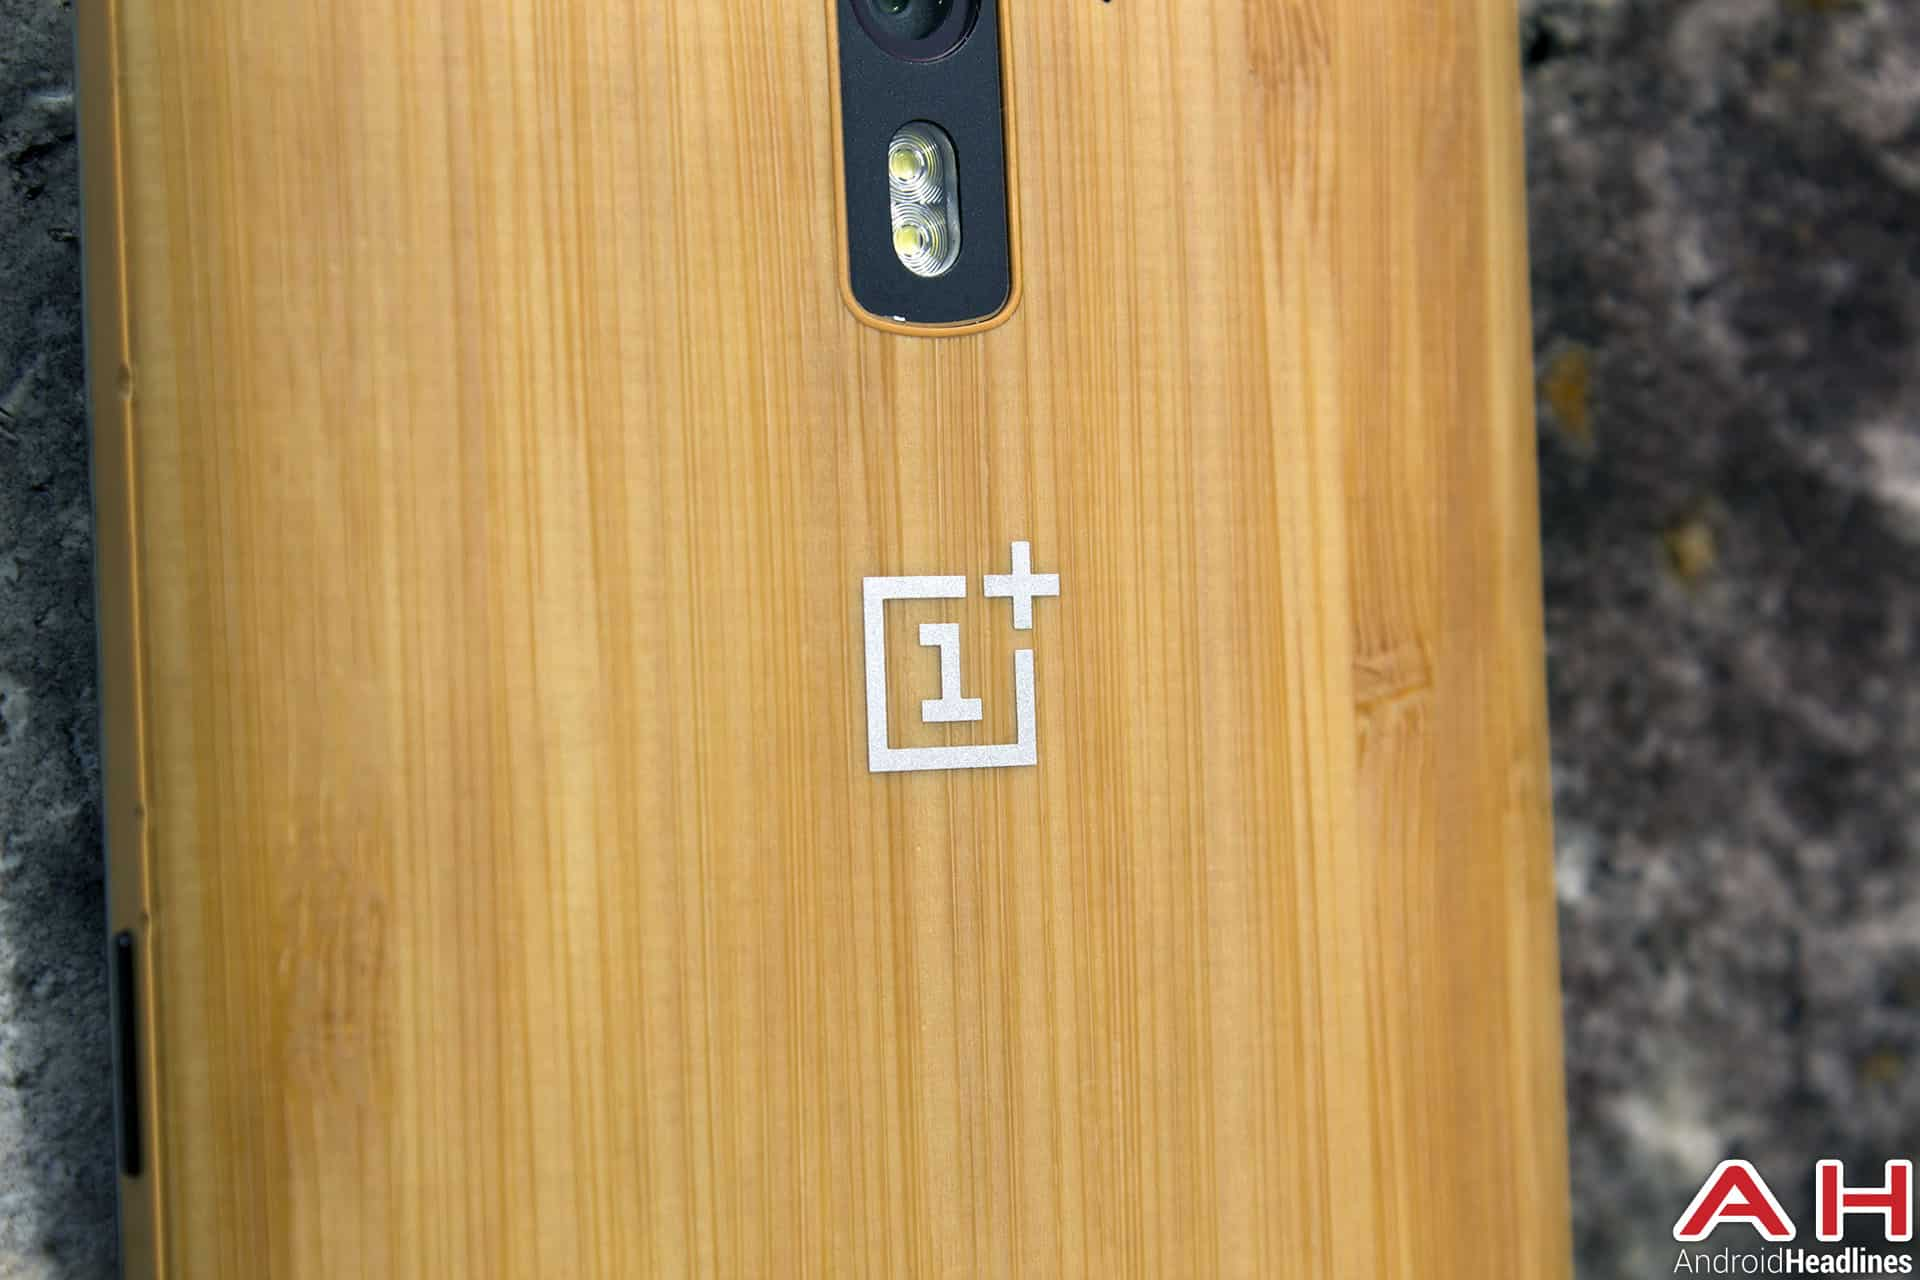 OnePlus-One-AH-10